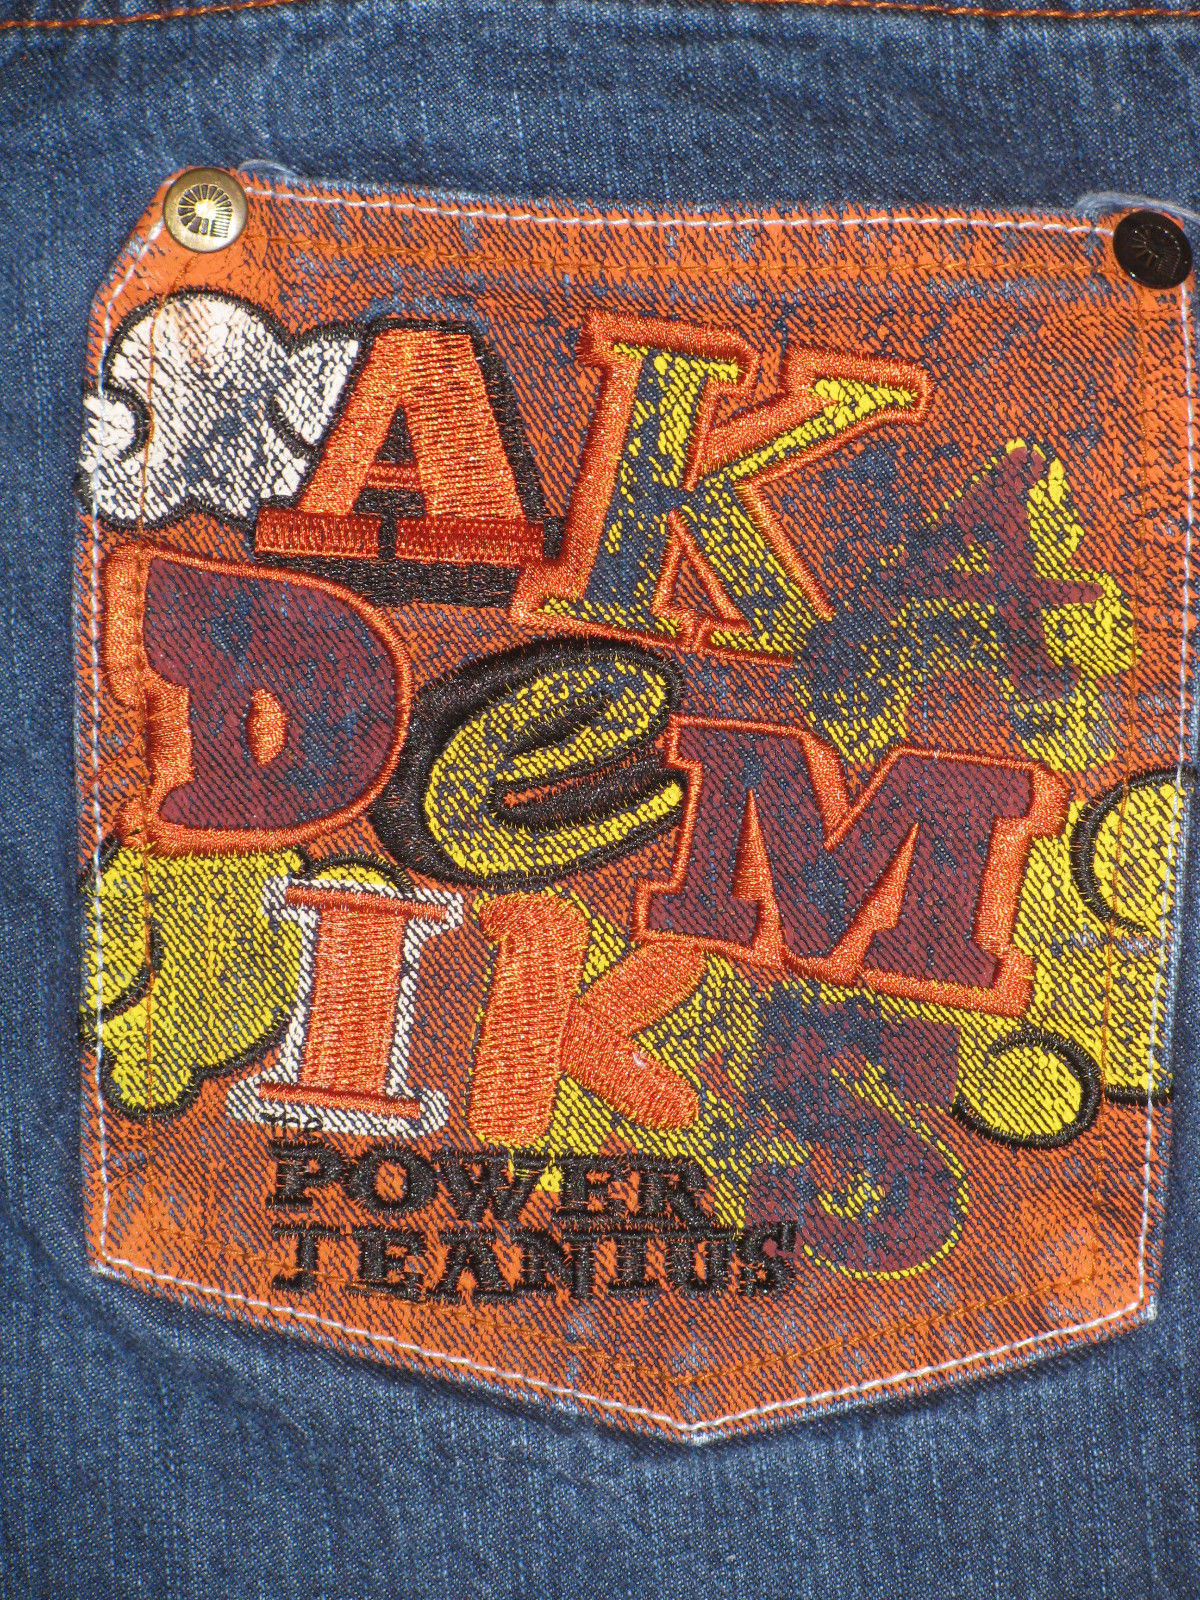 JEANS AKADEMIKS DENIUM JEANS THE POWER OF JEANIUS SIZE12 EMBELLISHED EMBROIRERY  image 5